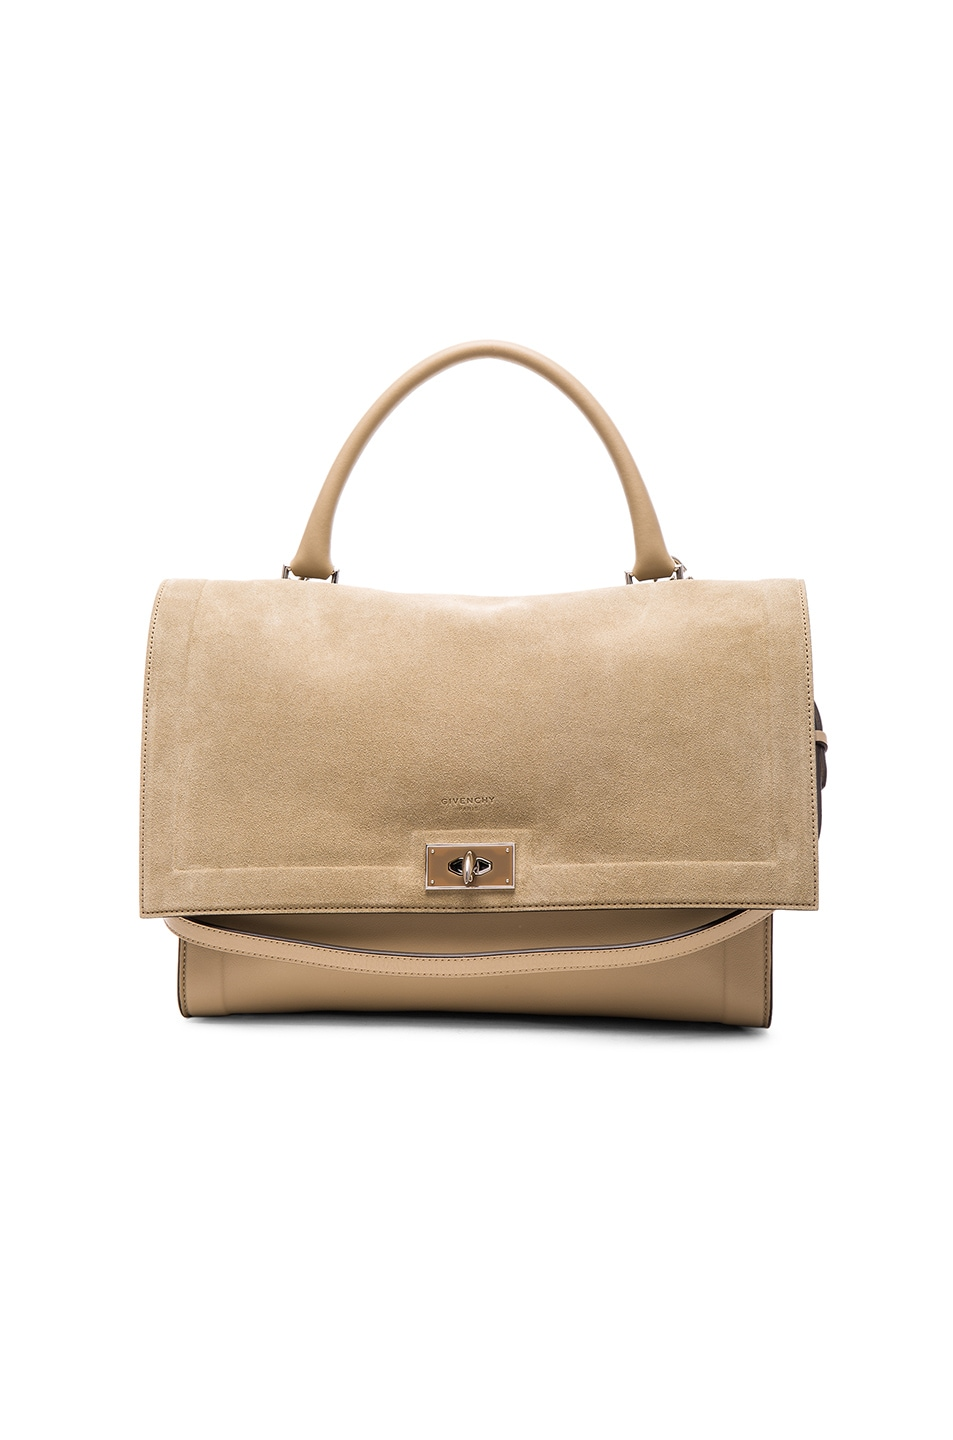 Image 1 of GIVENCHY Medium Suede & Leather Shark Bag in Beige